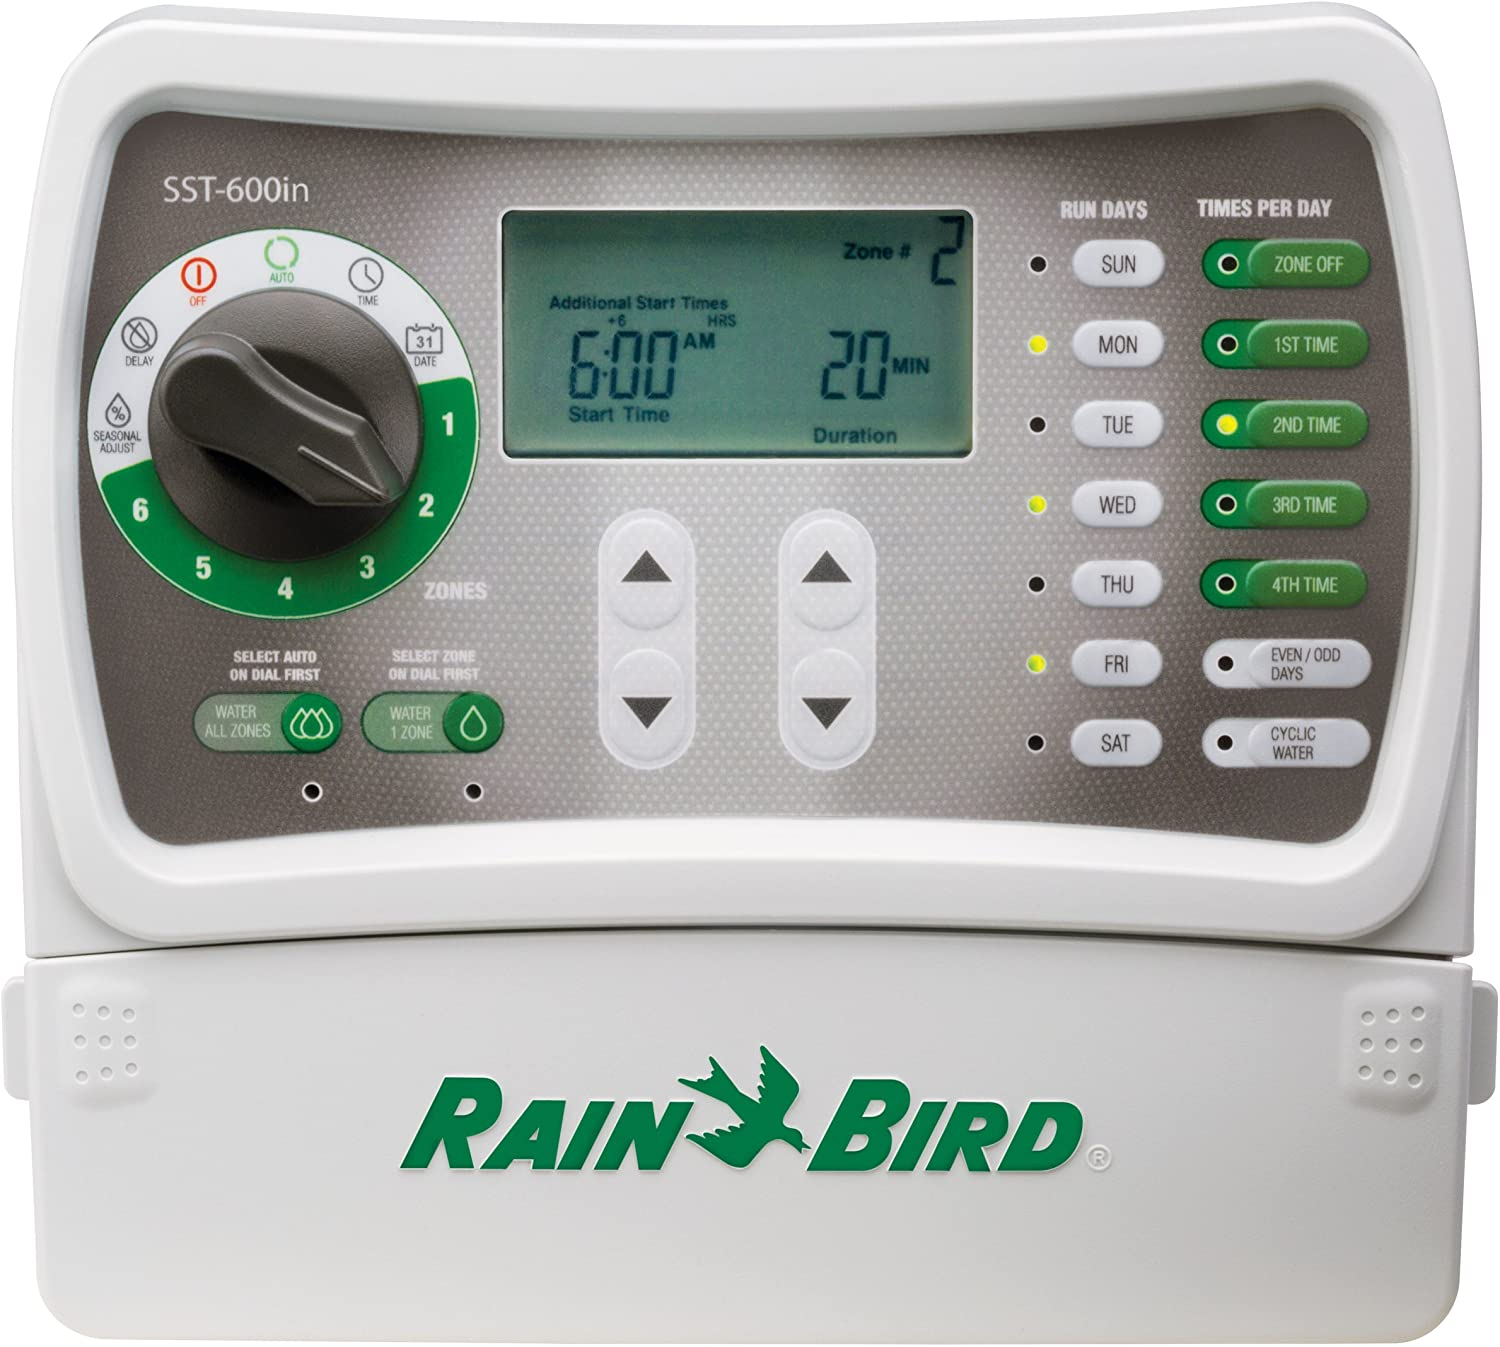 Amazon Com Rain Bird Sst600in Simple To Set Indoor Sprinkler Irrigation System Timer Controller 6 Zone Station This New Improved Model Replaces Sst600i Garden Outdoor